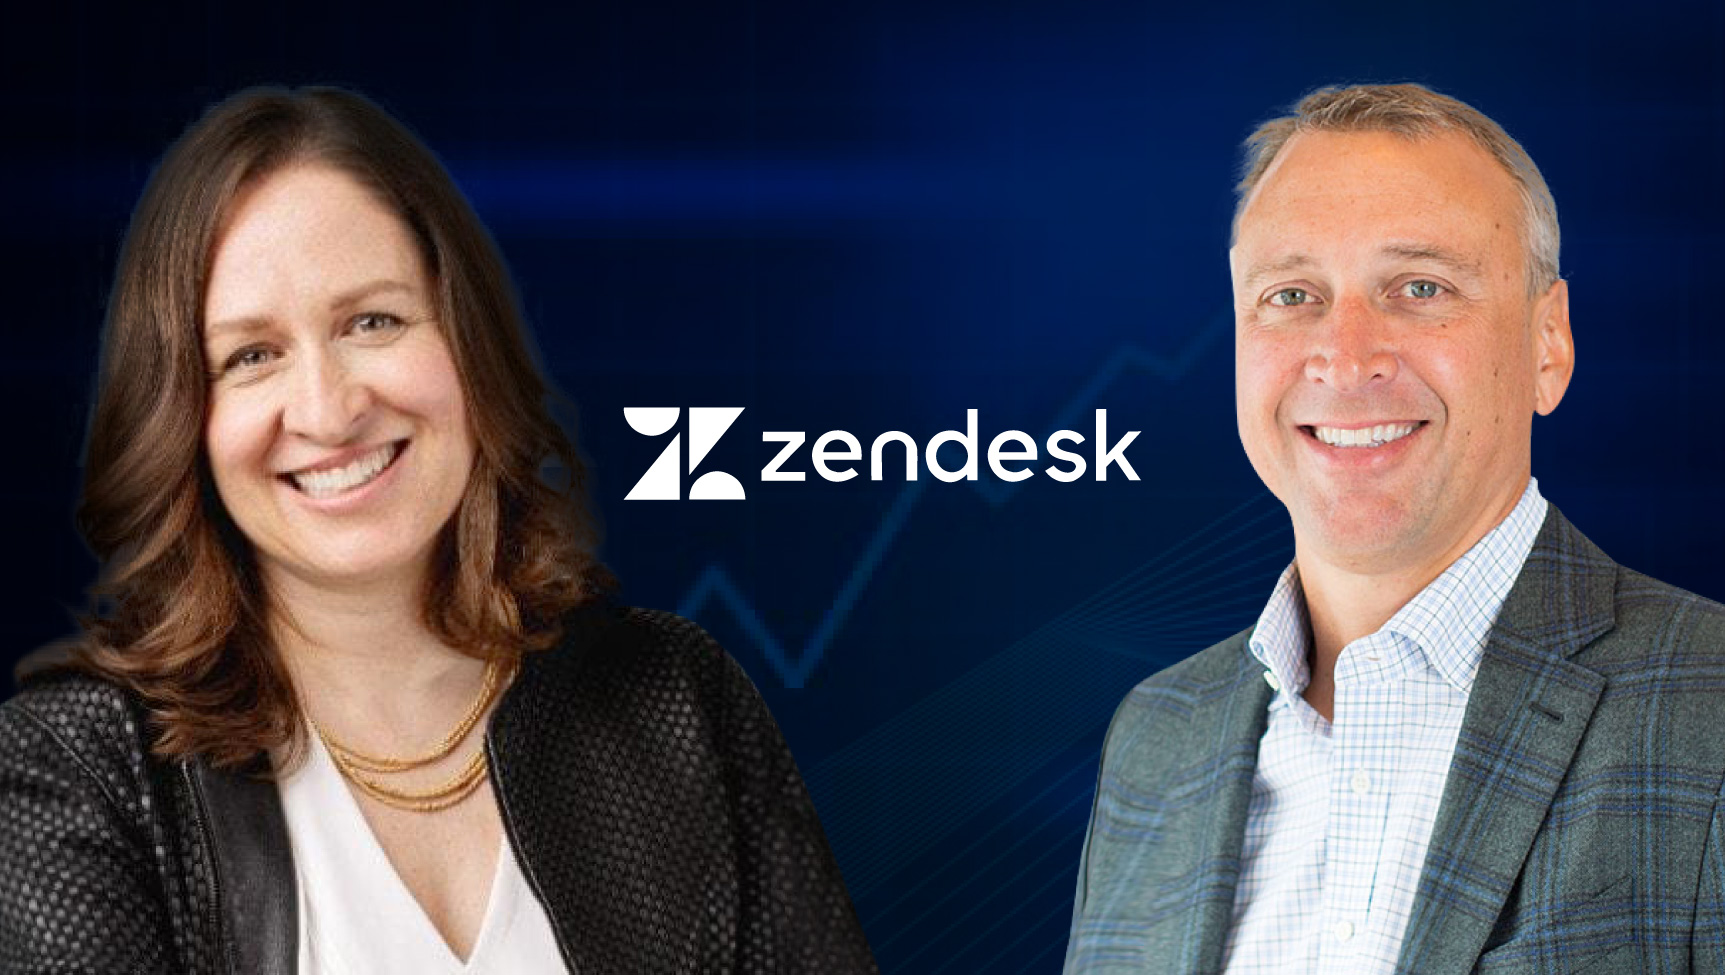 SalesTech Star Interview with Tom Keiser (Chief Operating Officer) and Elisabeth Zornes (Chief Customer Officer) at Zendesk